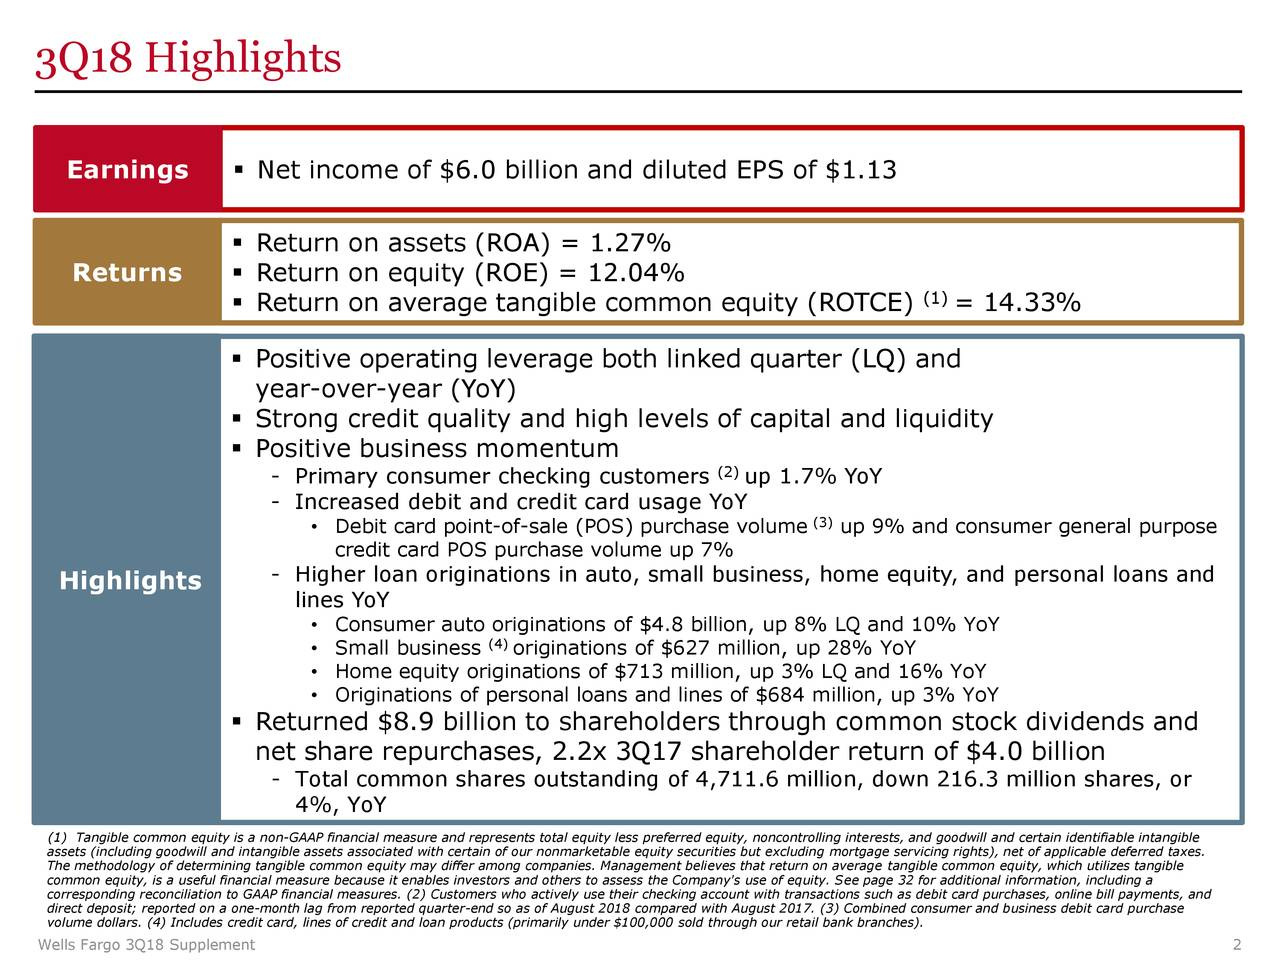 Earnings  Net income of $6.0 billion and diluted EPS of $1.13  Return on assets (ROA) = 1.27% Returns  Return on equity (ROE) = 12.04% (1)  Return on average tangible common equity (ROTCE) = 14.33%  Positive operating leverage both linked quarter (LQ) and year-over-year (YoY)  Strong credit quality and high levels of capital and liquidity  Positive business momentum - Primary consumer checking customers (2)up 1.7% YoY - Increased debit and credit card usage YoY (3) • Debit card point-of-sale (POS) purchase volume up 9% and consumer general purpose credit card POS purchase volume up 7% Highlights - Higher loan originations in auto, small business, home equity, and personal loans and lines YoY • Consumer auto o(4)inations of $4.8 billion, up 8% LQ and 10% YoY • Small business originations of $627 million, up 28% YoY • Home equity originations of $713 million, up 3% LQ and 16% YoY • Originations of personal loans and lines of $684 million, up 3% YoY  Returned $8.9 billion to shareholders through common stock dividends and net share repurchases, 2.2x 3Q17 shareholder return of $4.0 billion - Total common shares outstanding of 4,711.6 million, down 216.3 million shares, or 4%, YoY (1) Tangible common equity is a non-GAAP financial measure and represents total equity less preferred equity, noncontrolling interests, and goodwill and certain identifiable intangible assets (including goodwill and intangible assets associated with certain of our nonmarketable equity securities but excluding mortgage servicing rights), net of applicable deferred taxes. common equity, is a useful financial measure because it enables investors and others to assess the Company's use of equity. See page 32 for additional information, including a corresponding reconciliation to GAAP financial measures. (2) Customers who actively use their checking account with transactions such as debit card purchases, online bill payments, and volume dollars. (4) Includes credit card, lines of credit and loan products (primarily under $100,000 sold through our retail bank branches).nd business debit card purchase Wells Fargo 3Q18 Supplement 2